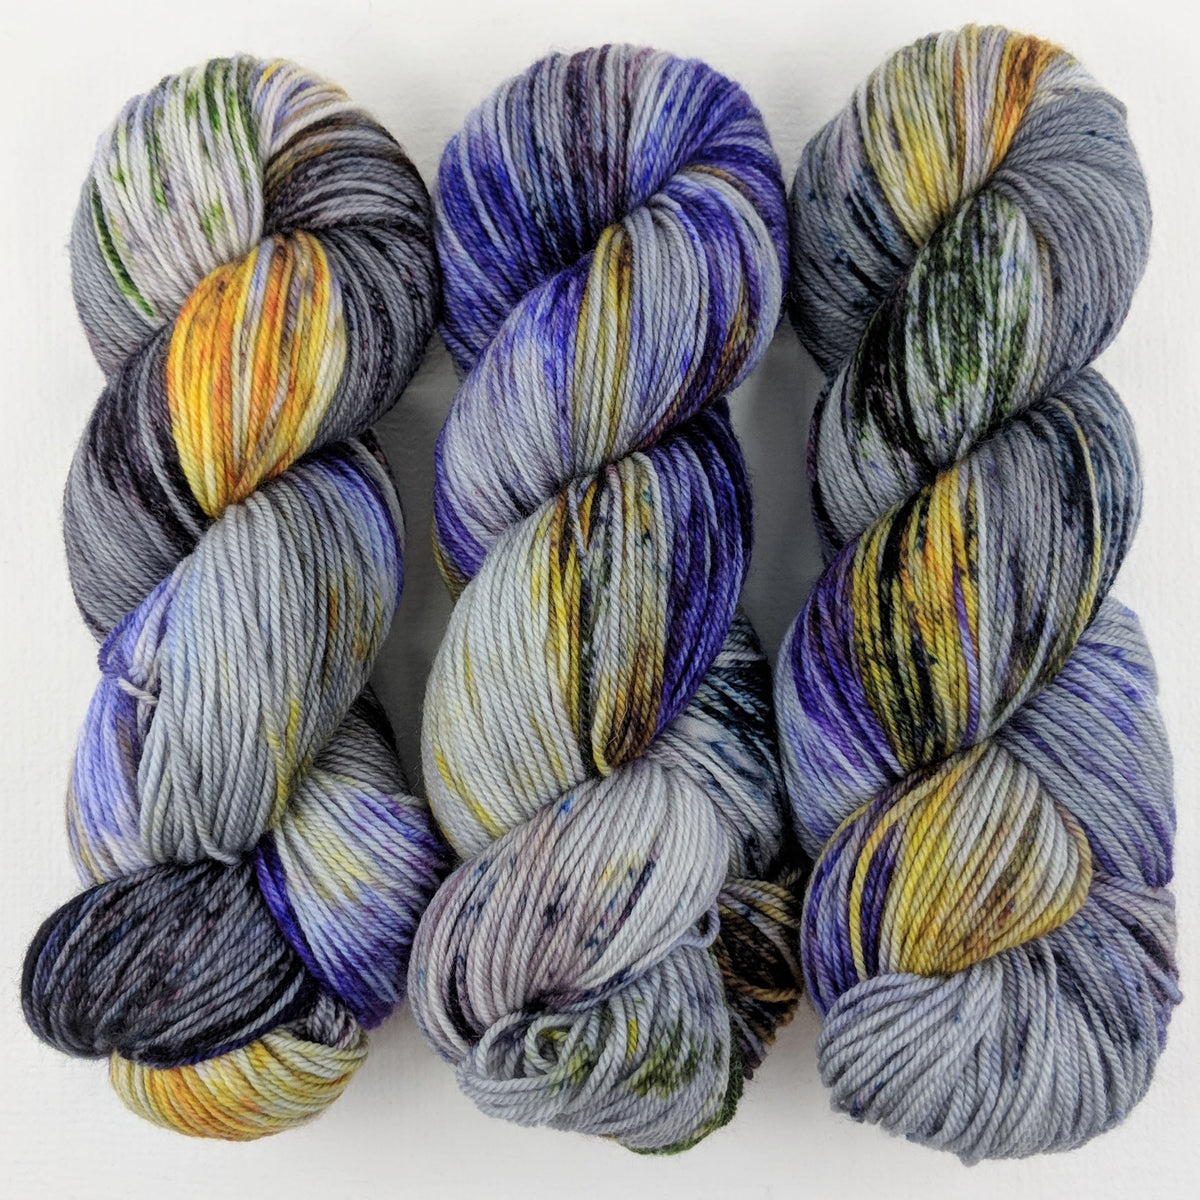 Mountain Primula in Worsted Weight